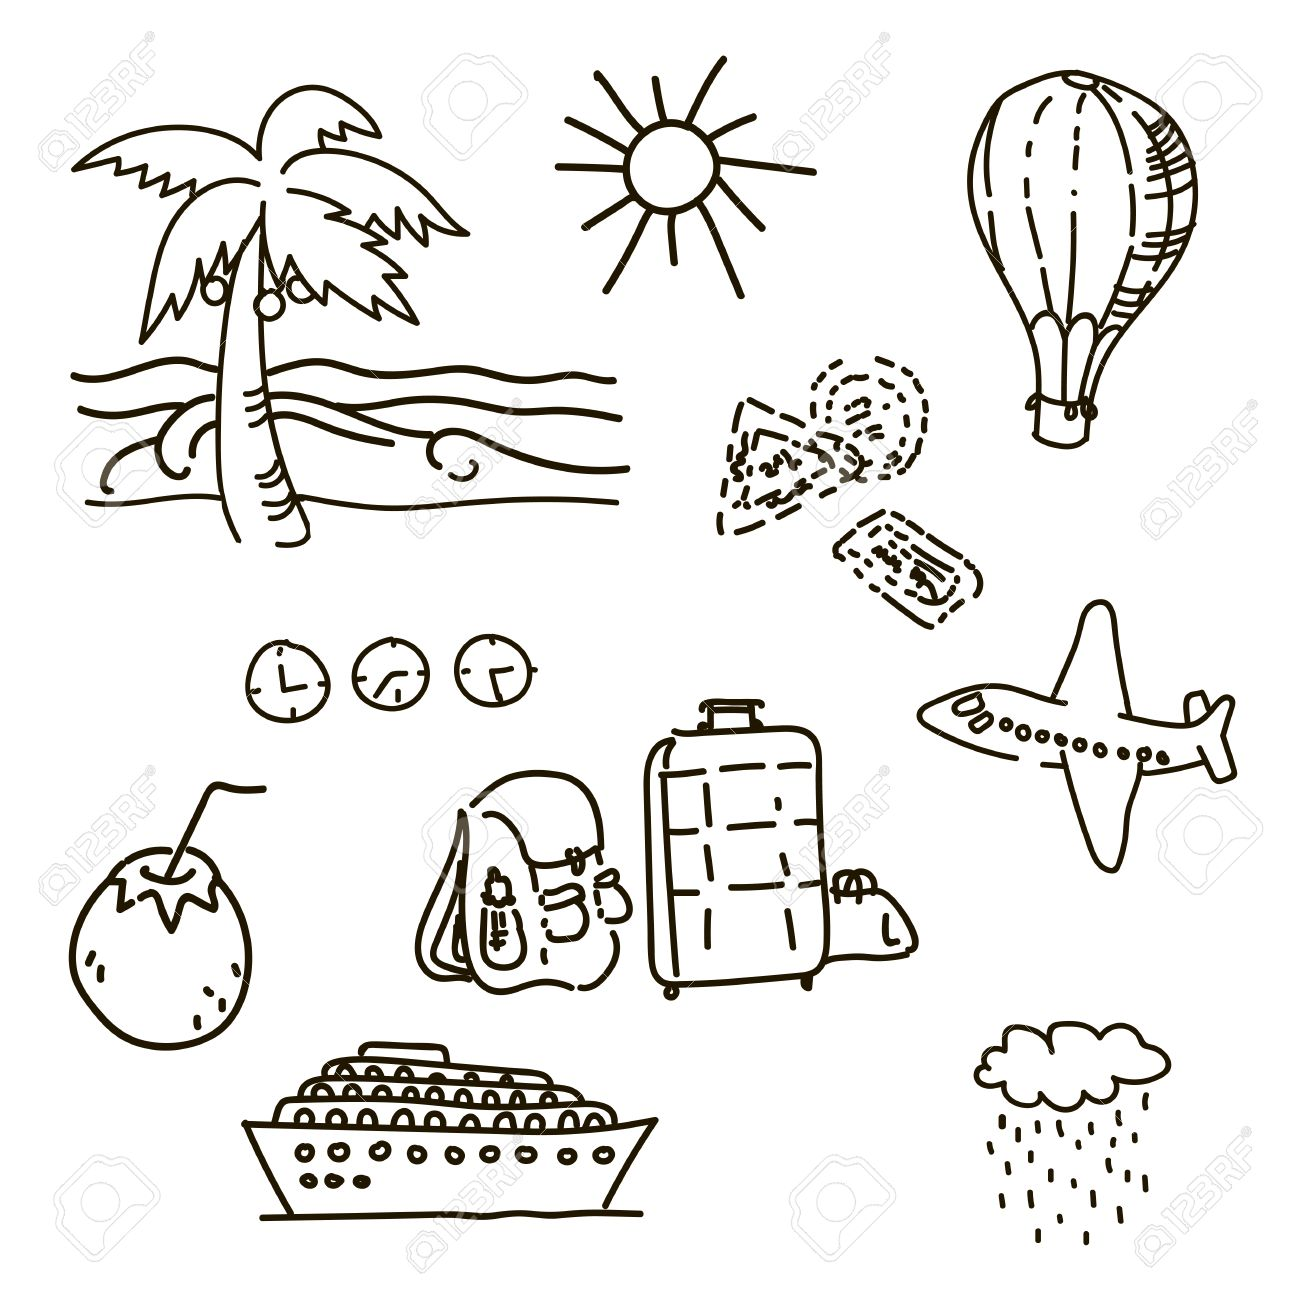 1300x1300 Outline Drawings By Hand In Travel Sketch Vector Palm Trees Sun